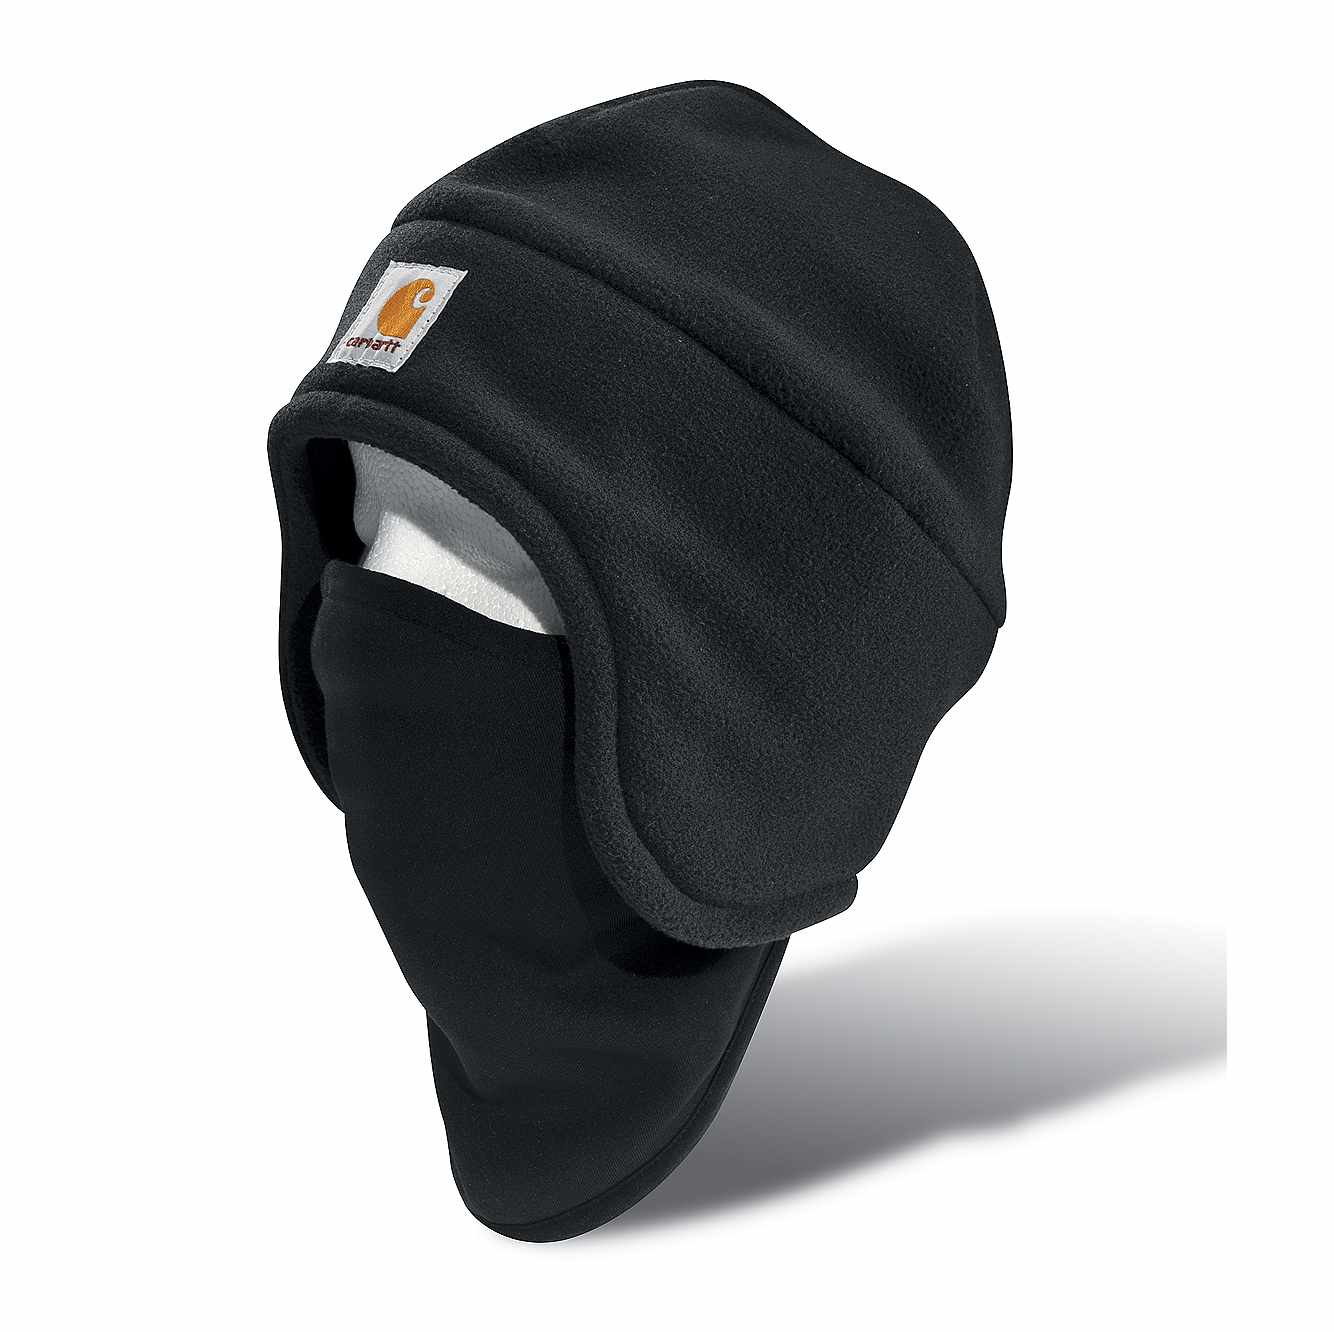 Picture of Fleece 2-in-1 Headwear in Black